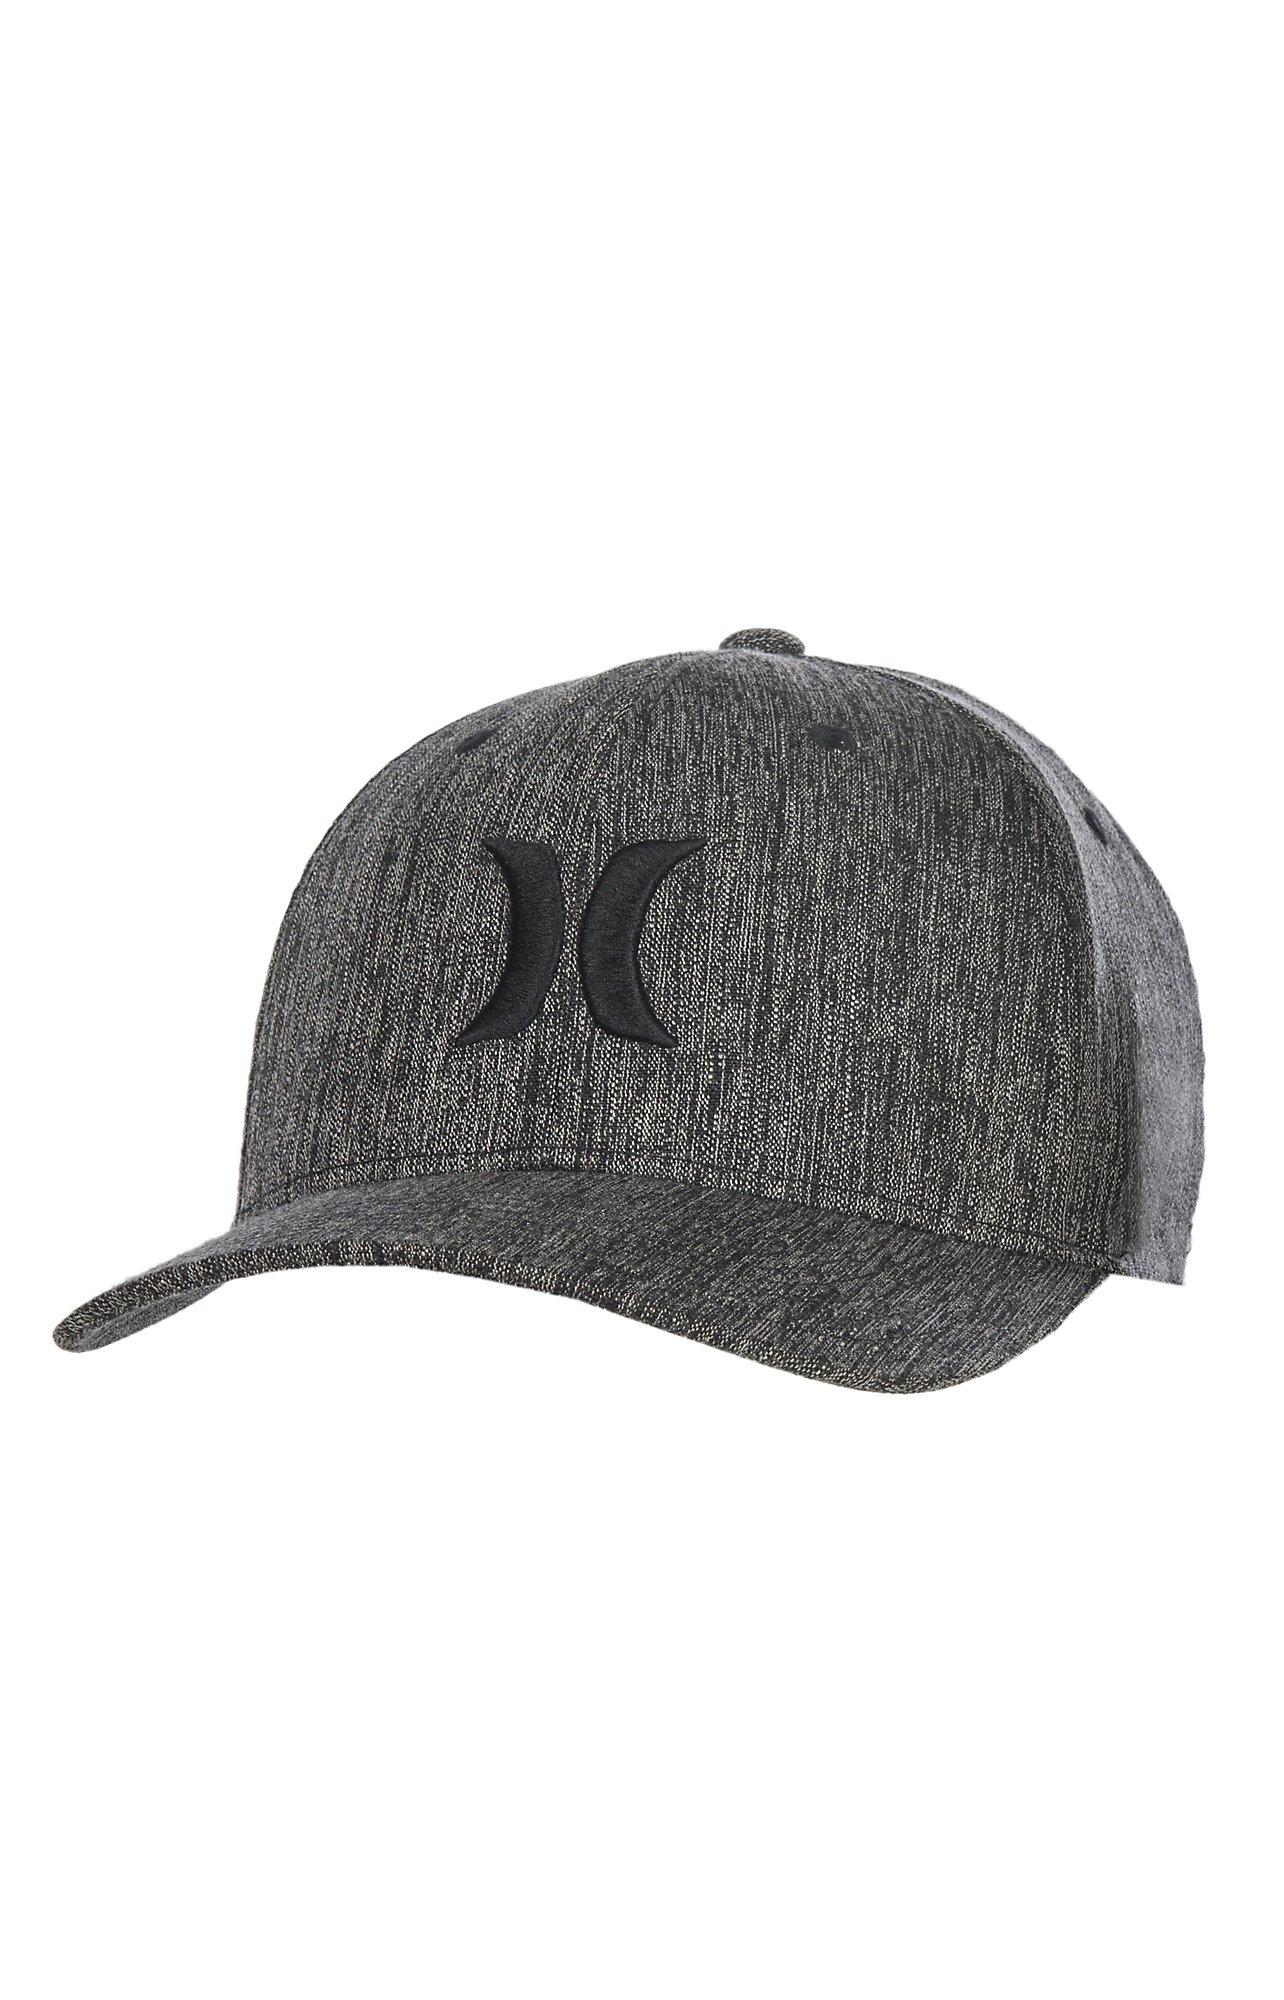 Hurley Dri-Fit One and Only Black FlexFit Cap  19cabd4f7b8